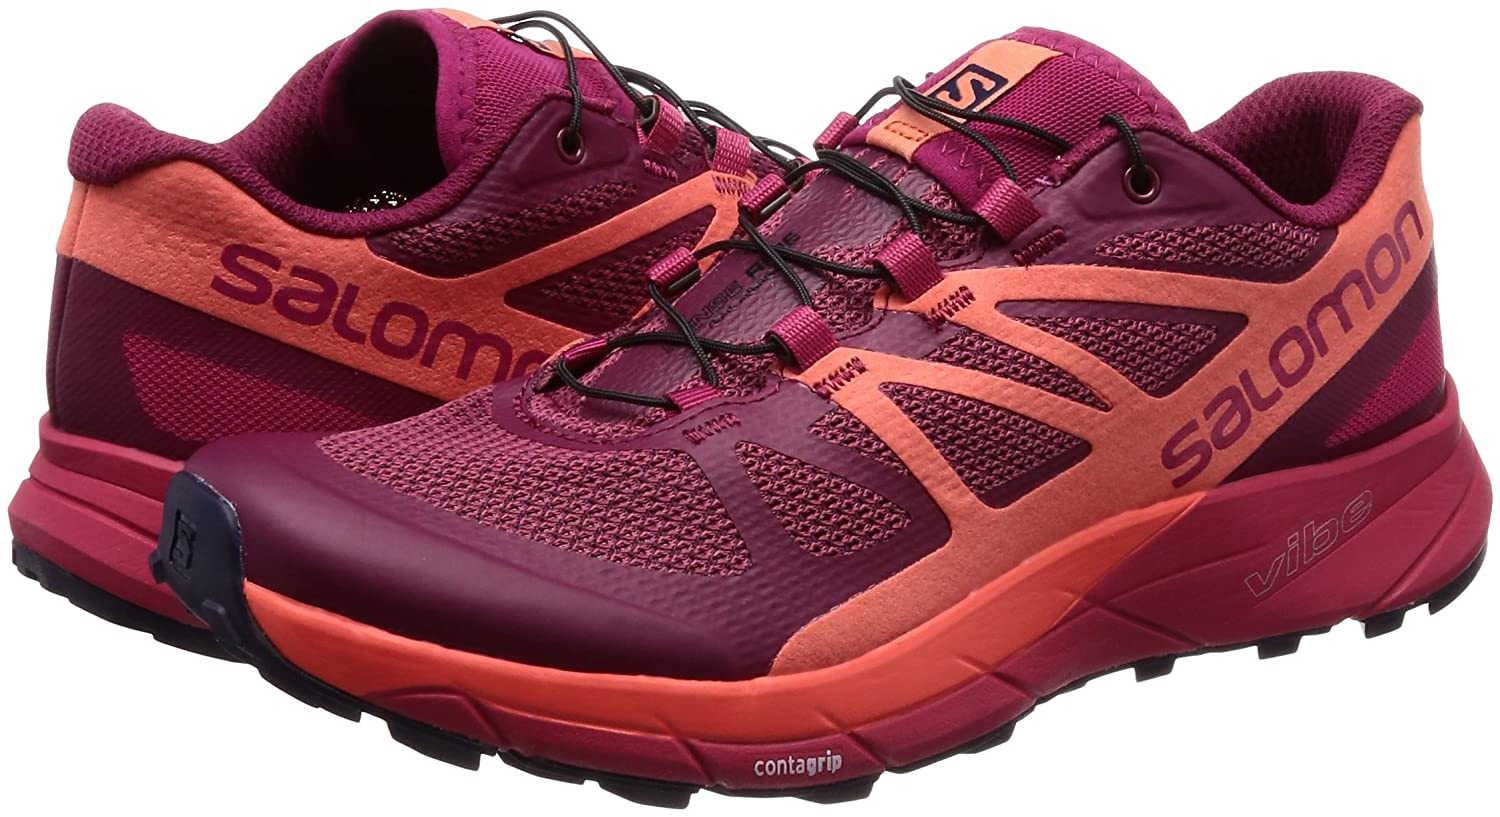 Salomon - Sense Ride Running Shoe - Salomon Women's B01N78XDC2 6|SANGRIA L398486 0b4cf6